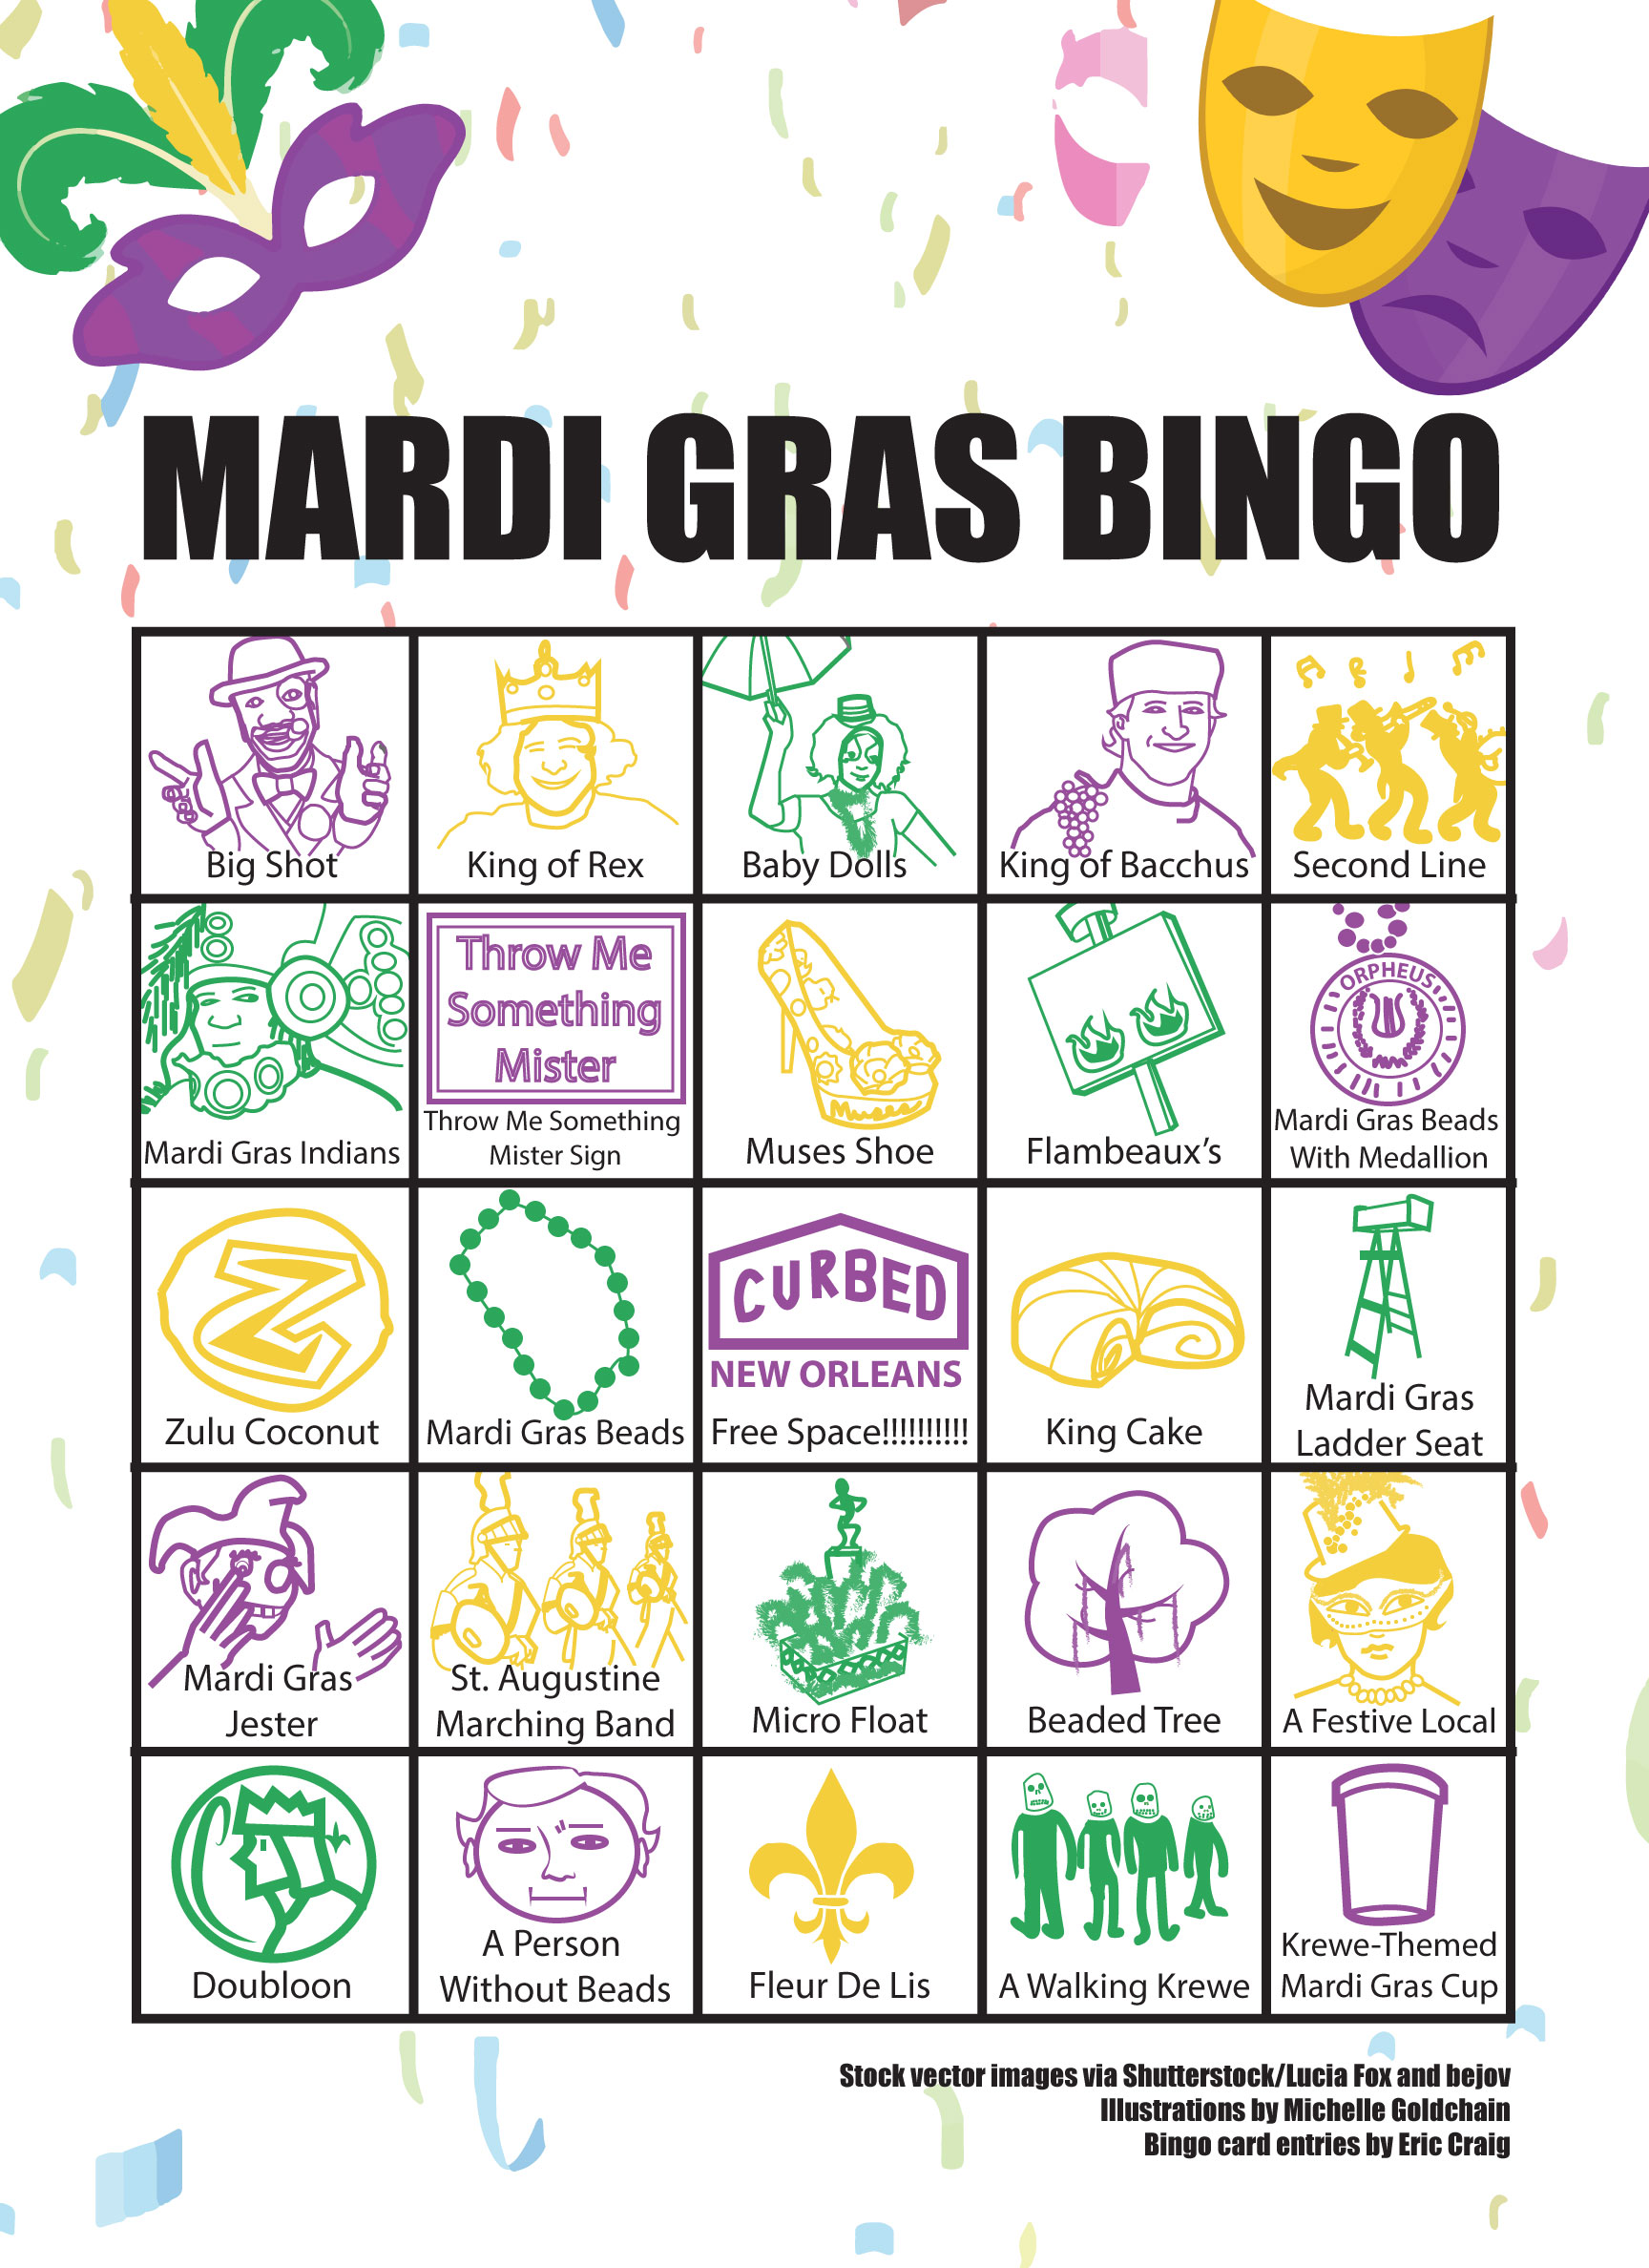 Celebrate Mardi Gras 2018 in New Orleans with this bingo ...